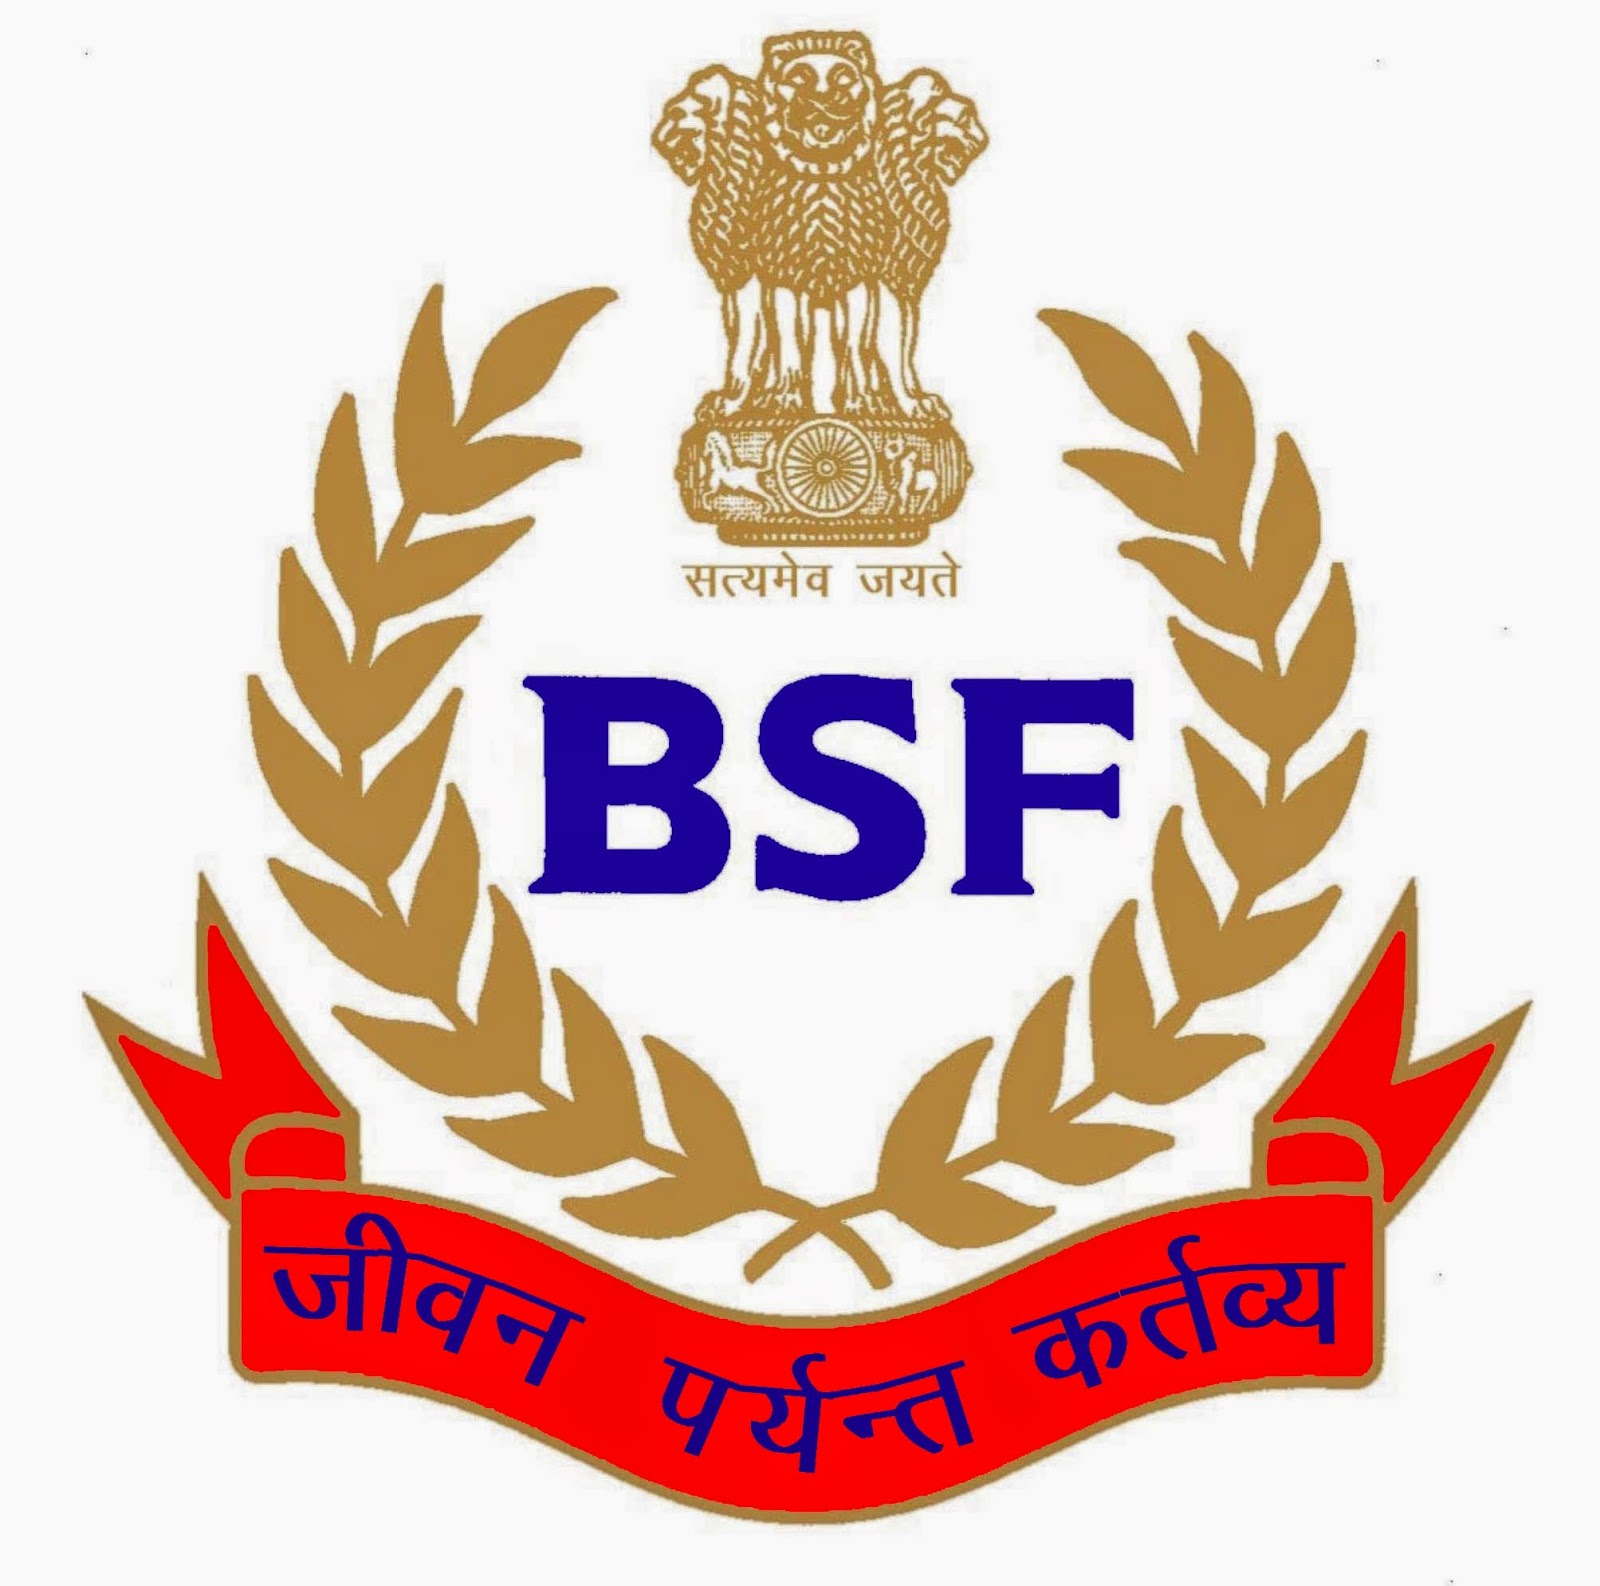 BSF Logo - Logo's of Indian Institutes and Corporation